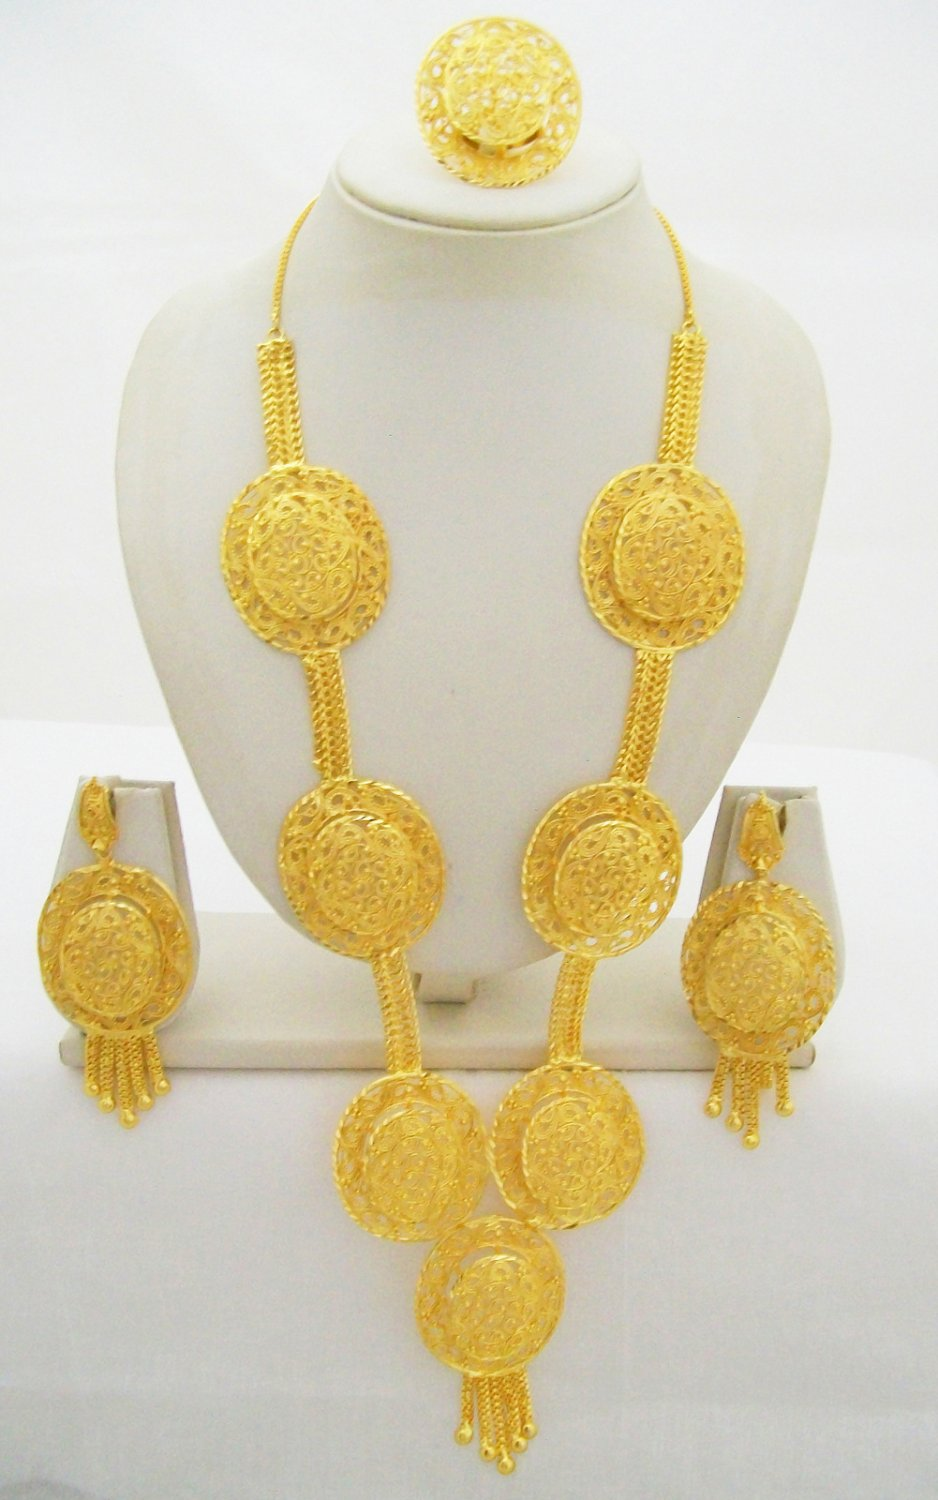 Rani Haar Filigree Gold Plated Long Necklace Antique Indian Wedding Bridal Jewelry Set